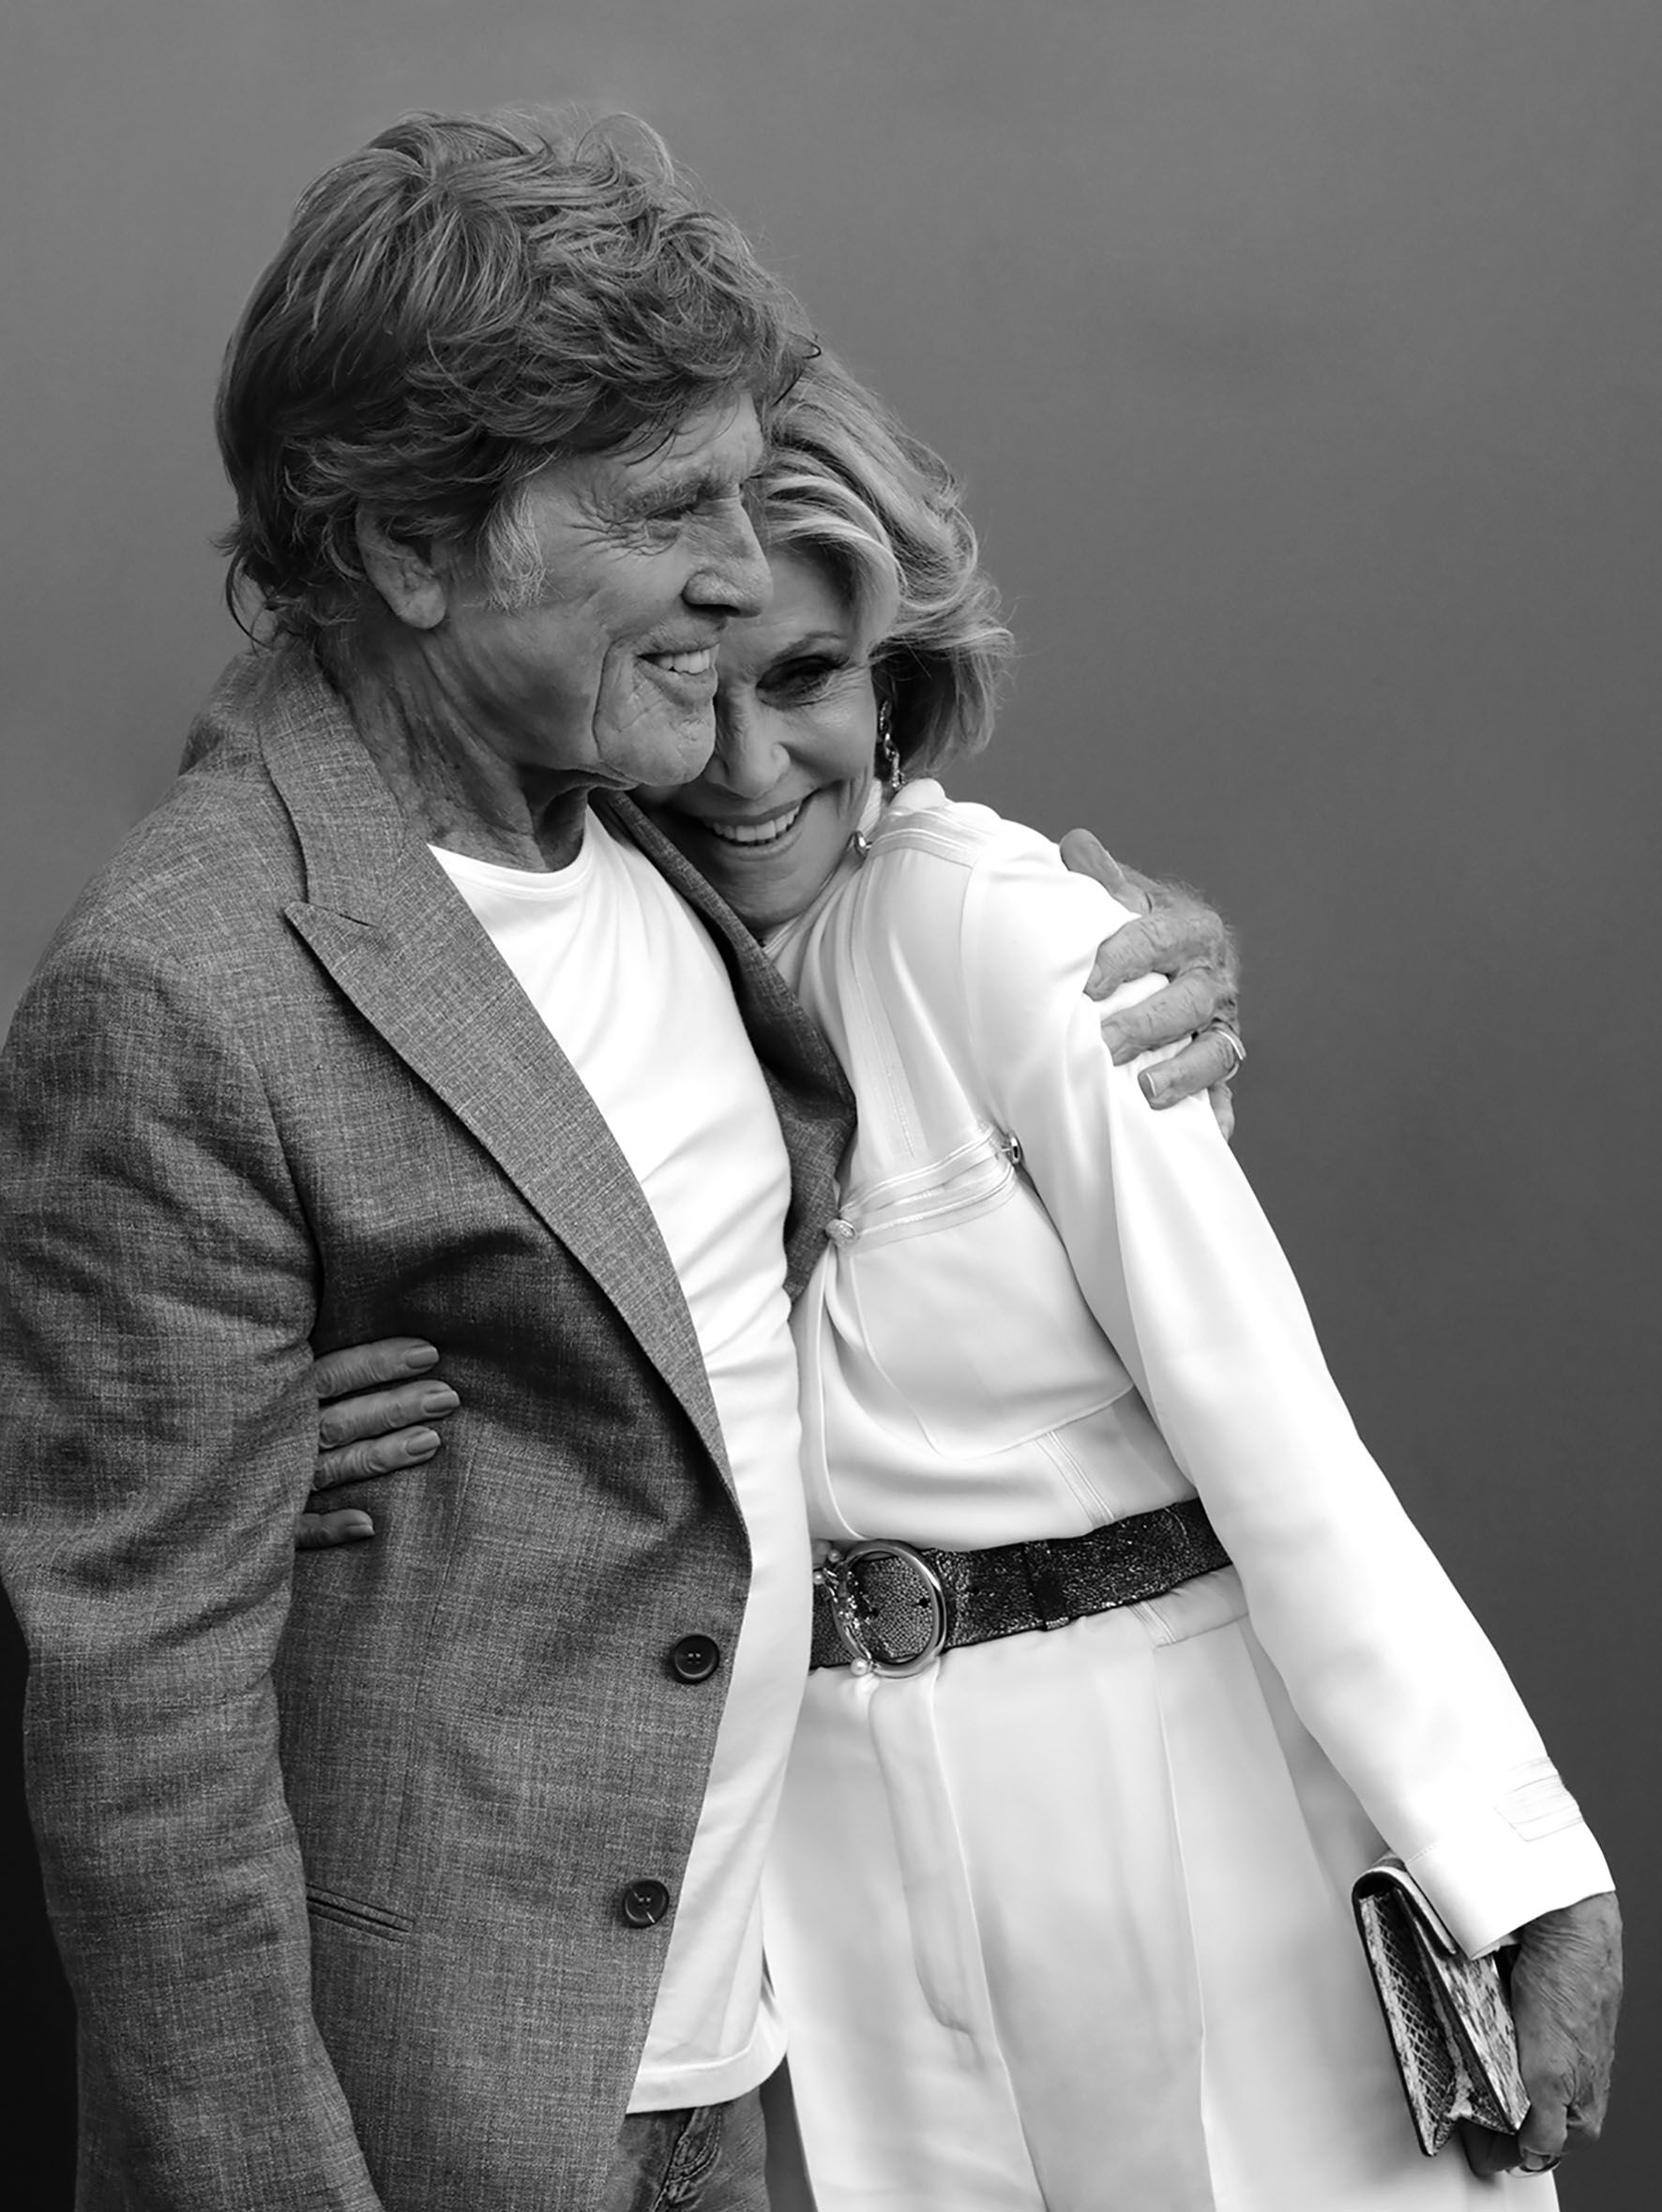 Mart Engelen, Robert Redford and Jane Fonda, Venice 2017, 2017, Hahnemuhle fine art print, 40x50cm, edition: No 3/10, Courtesy Suite 59 Gallery